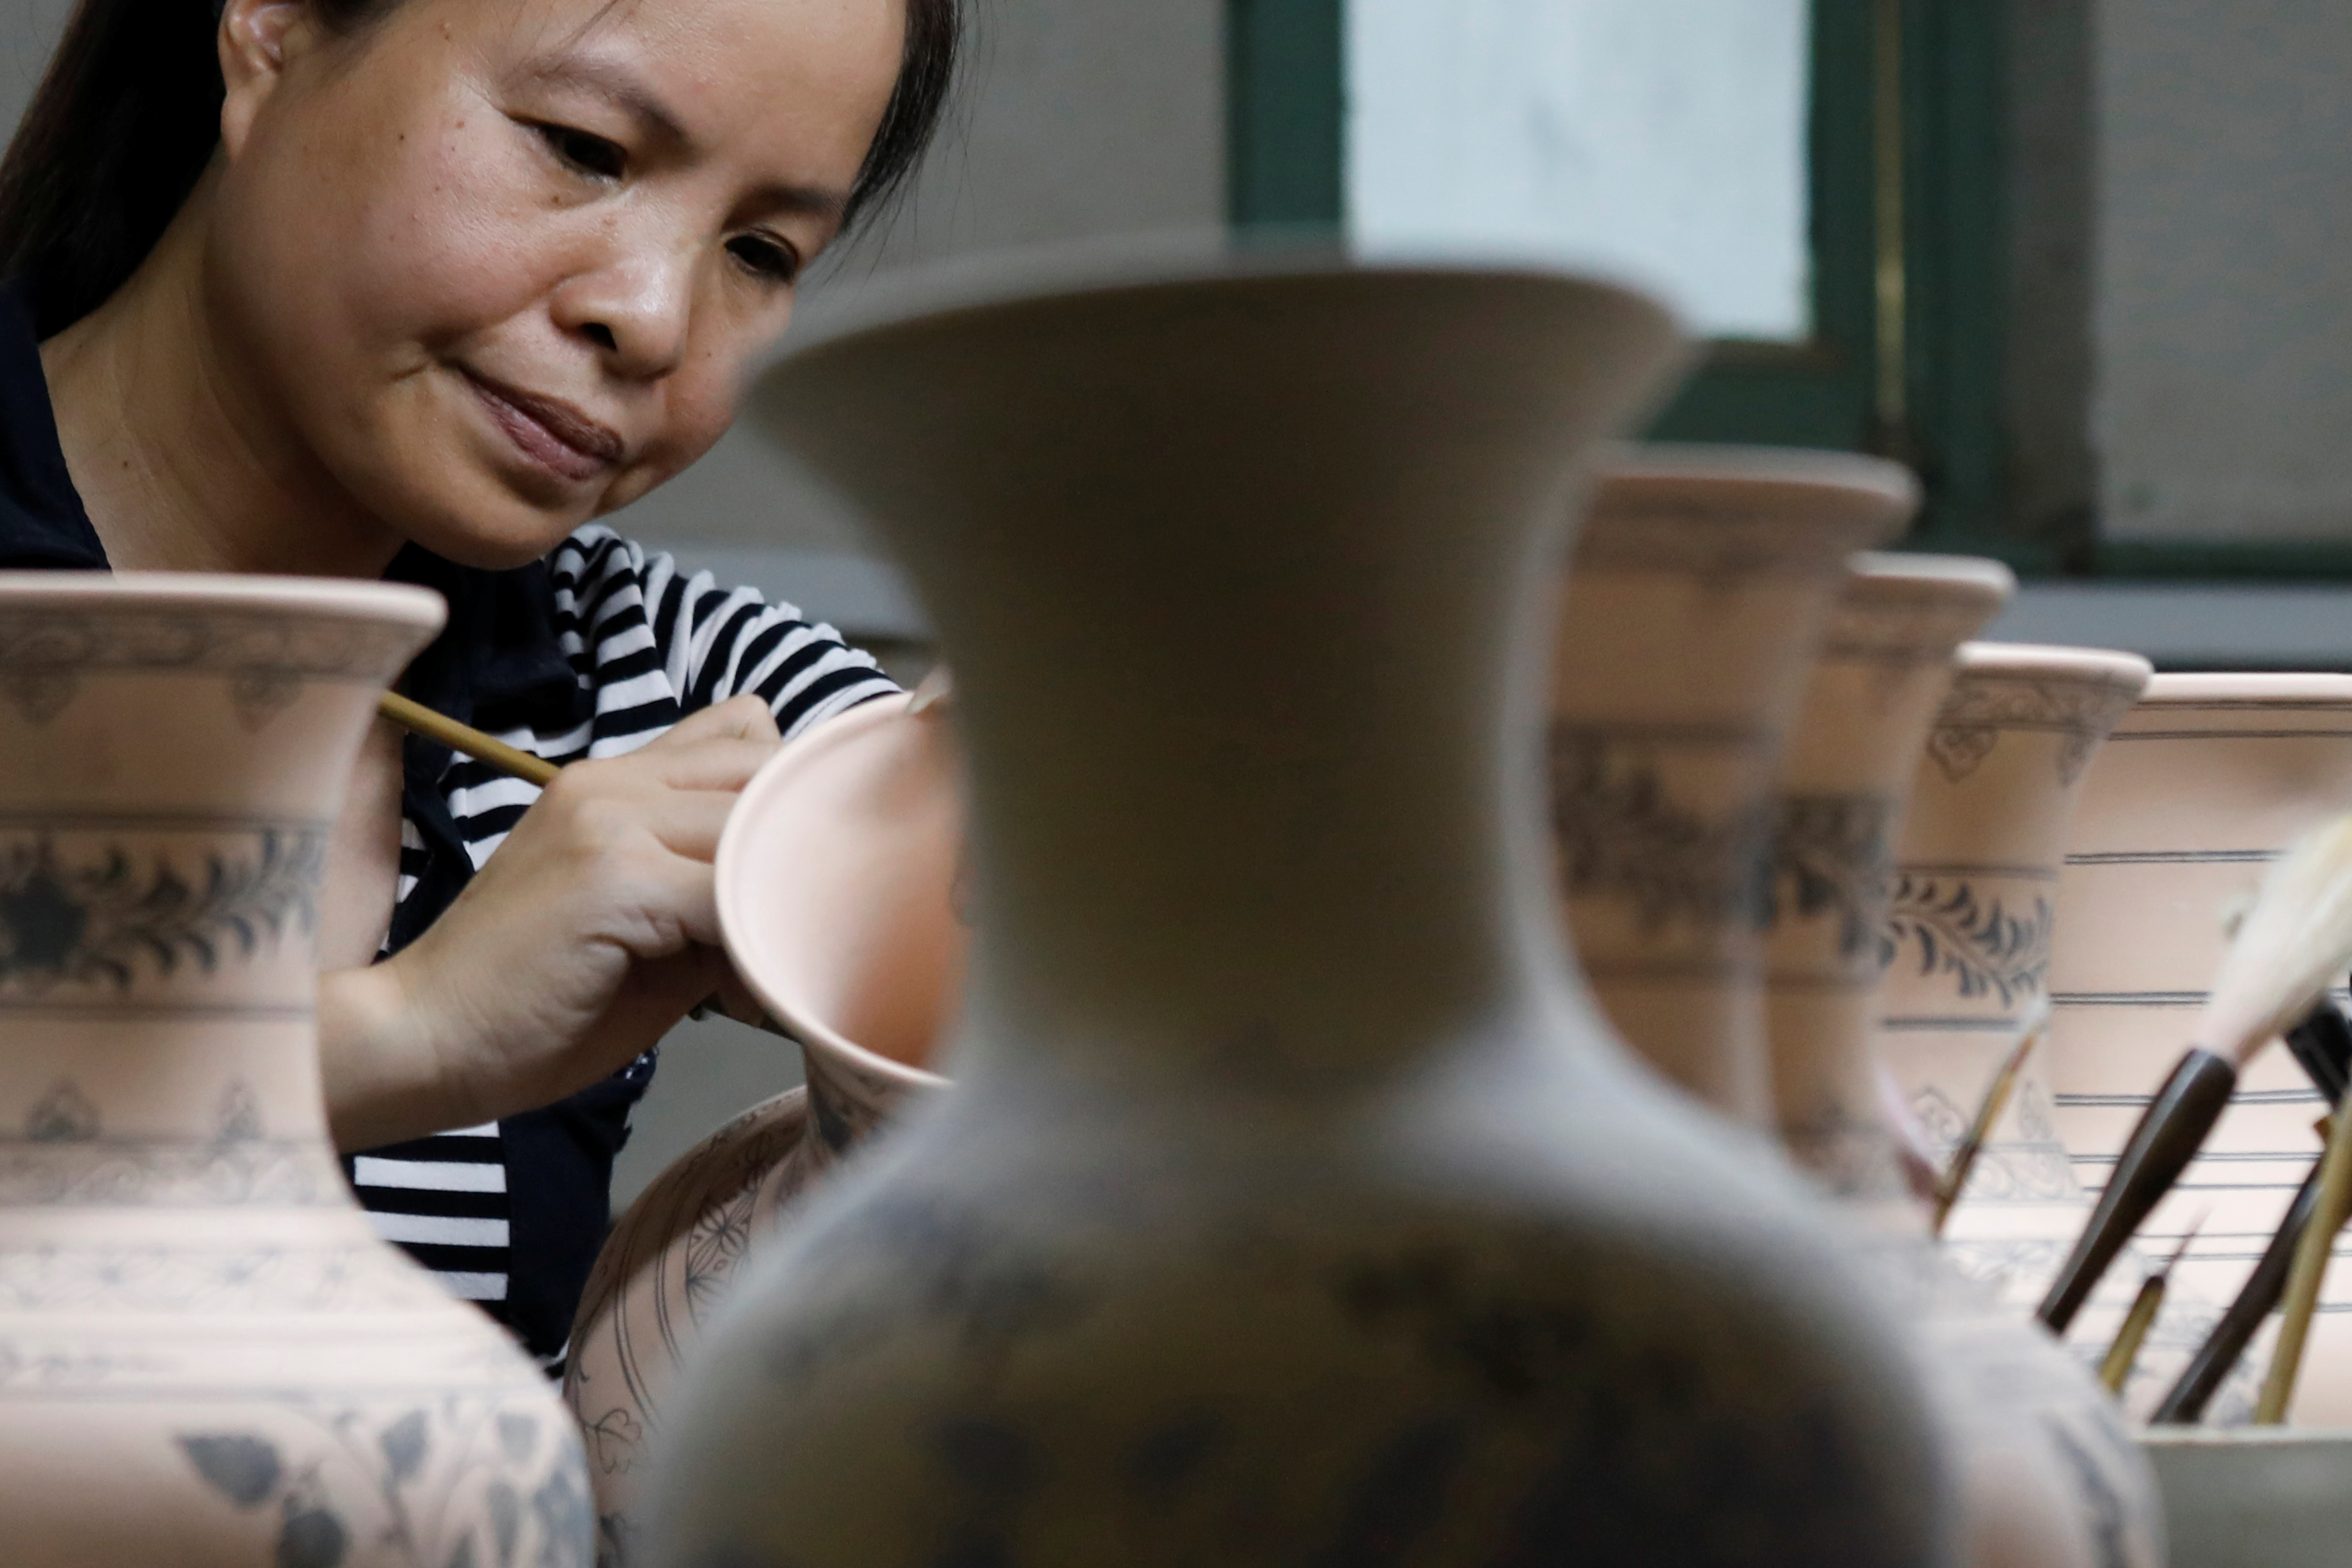 Training and support for female entrepreneurs in Vietnam: What do women want and need?